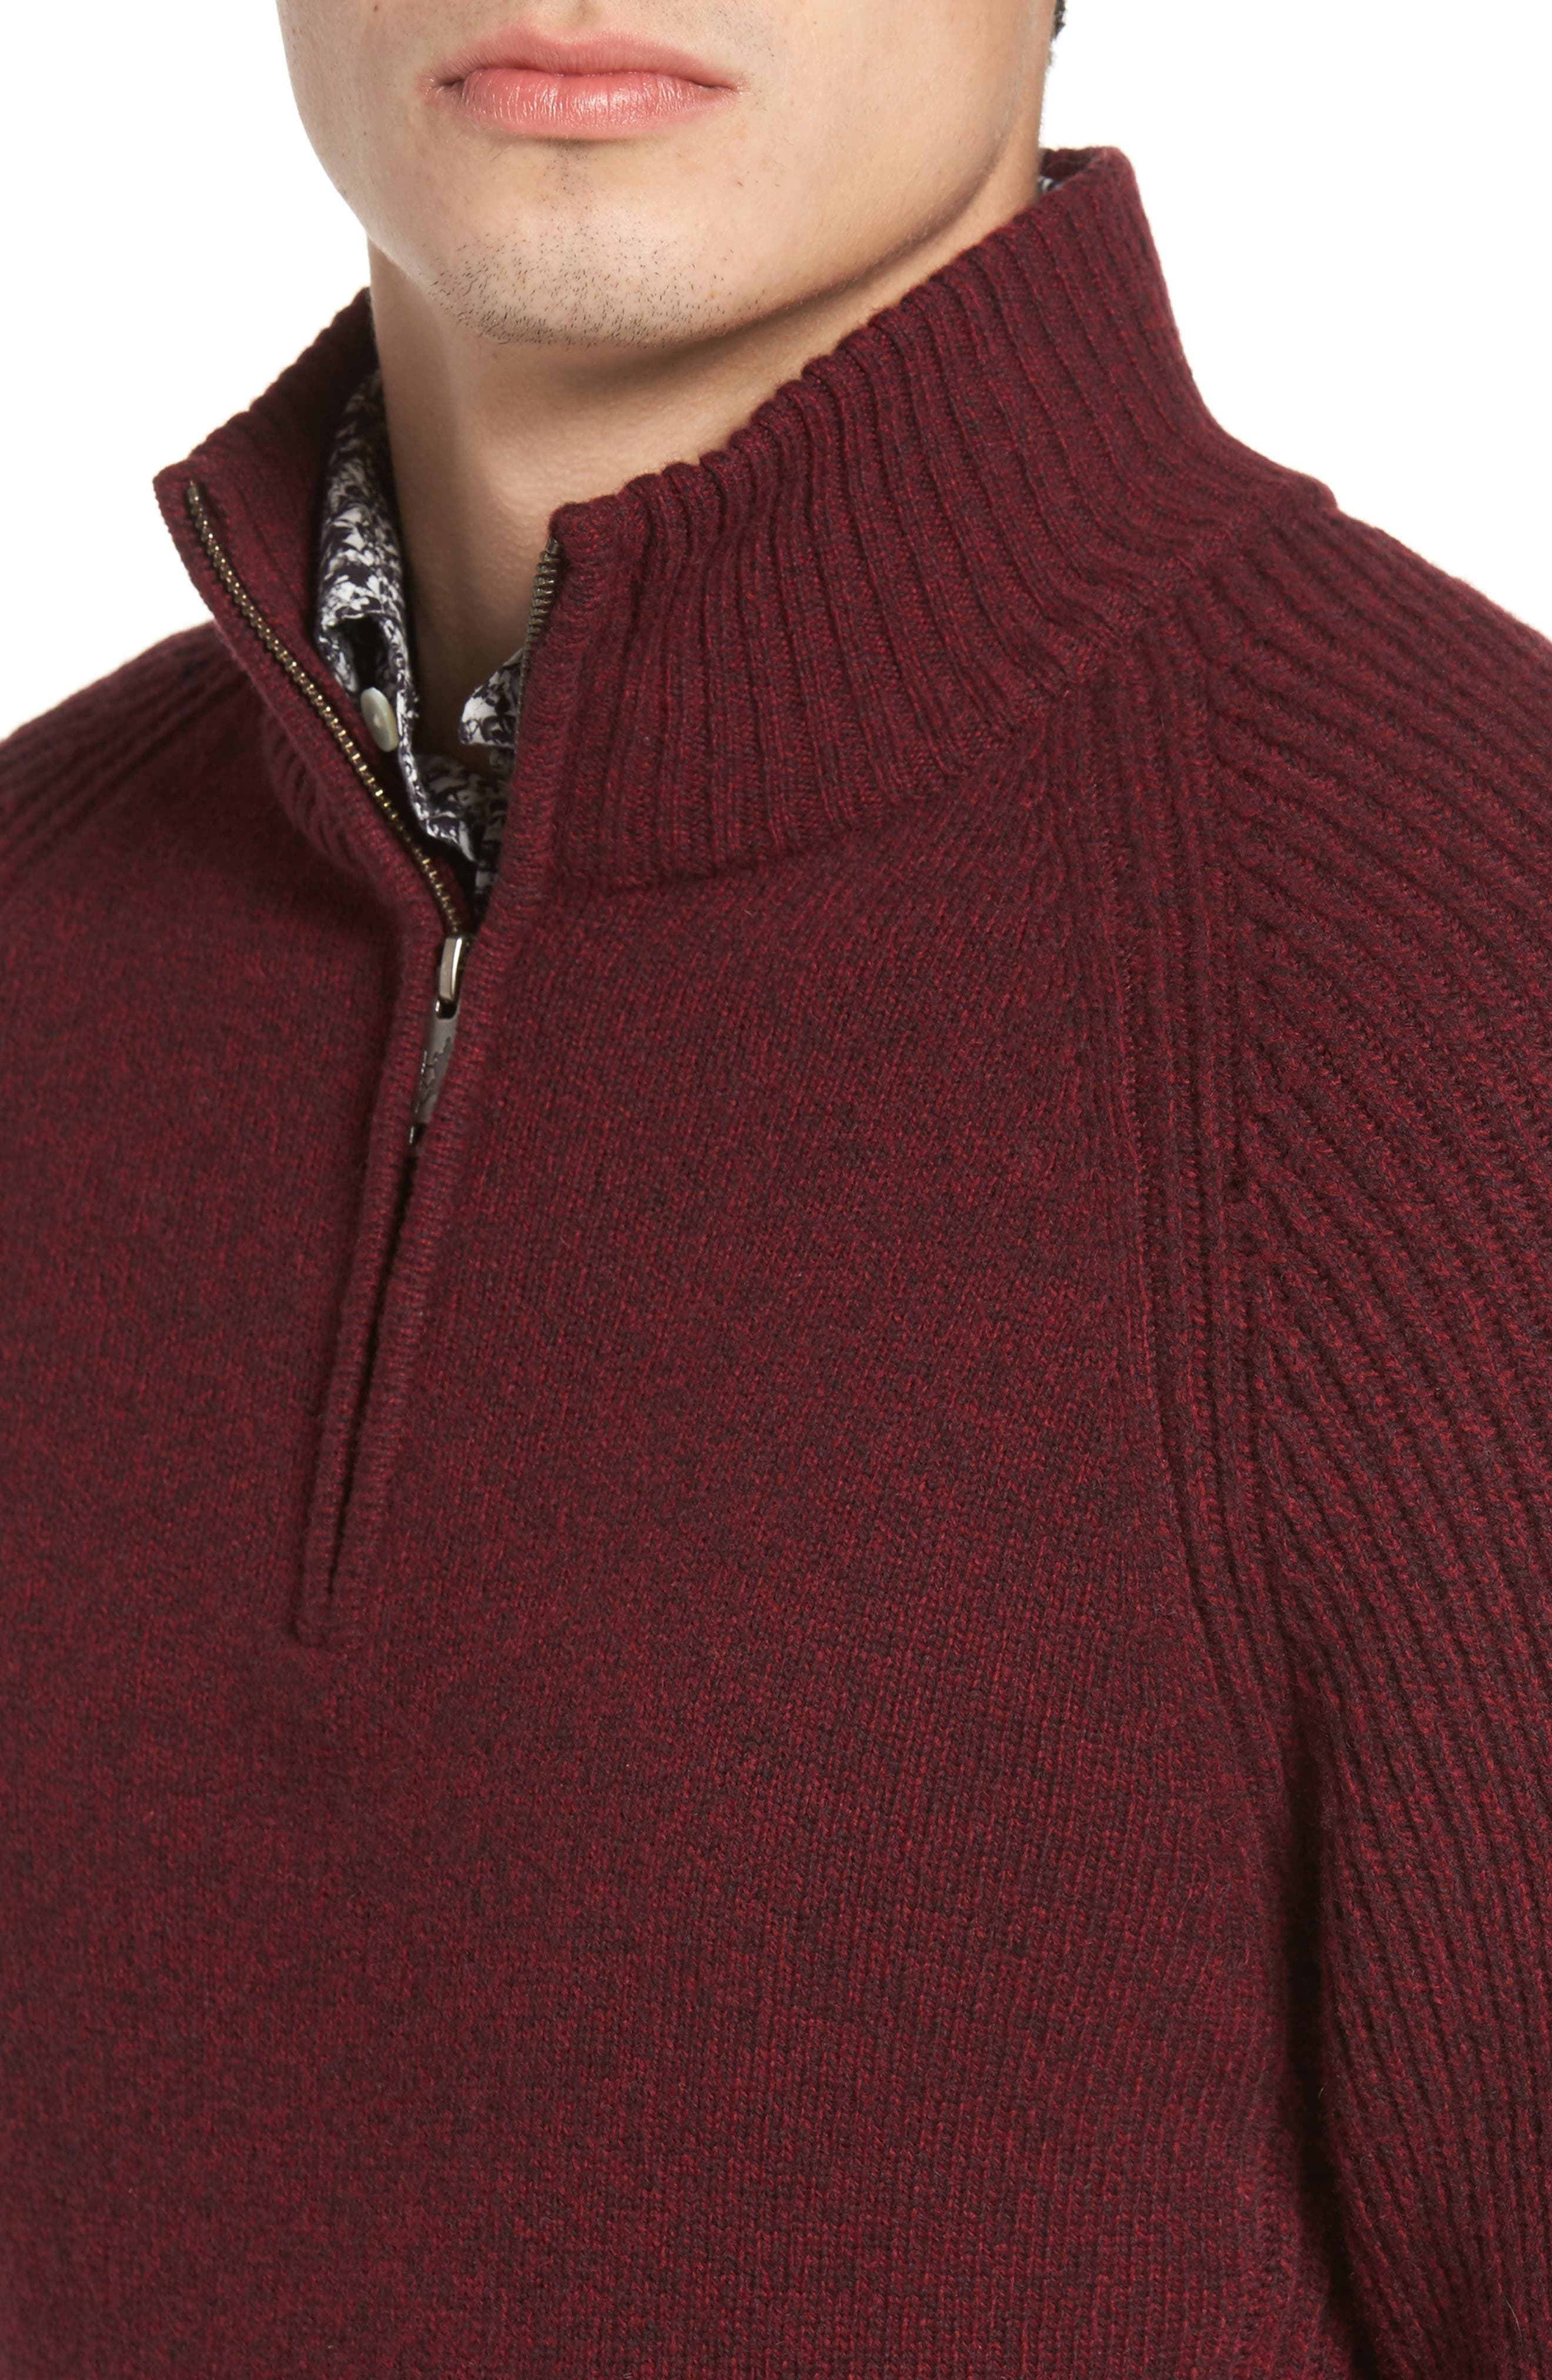 Stredwick Lambswool Sweater,                             Alternate thumbnail 18, color,